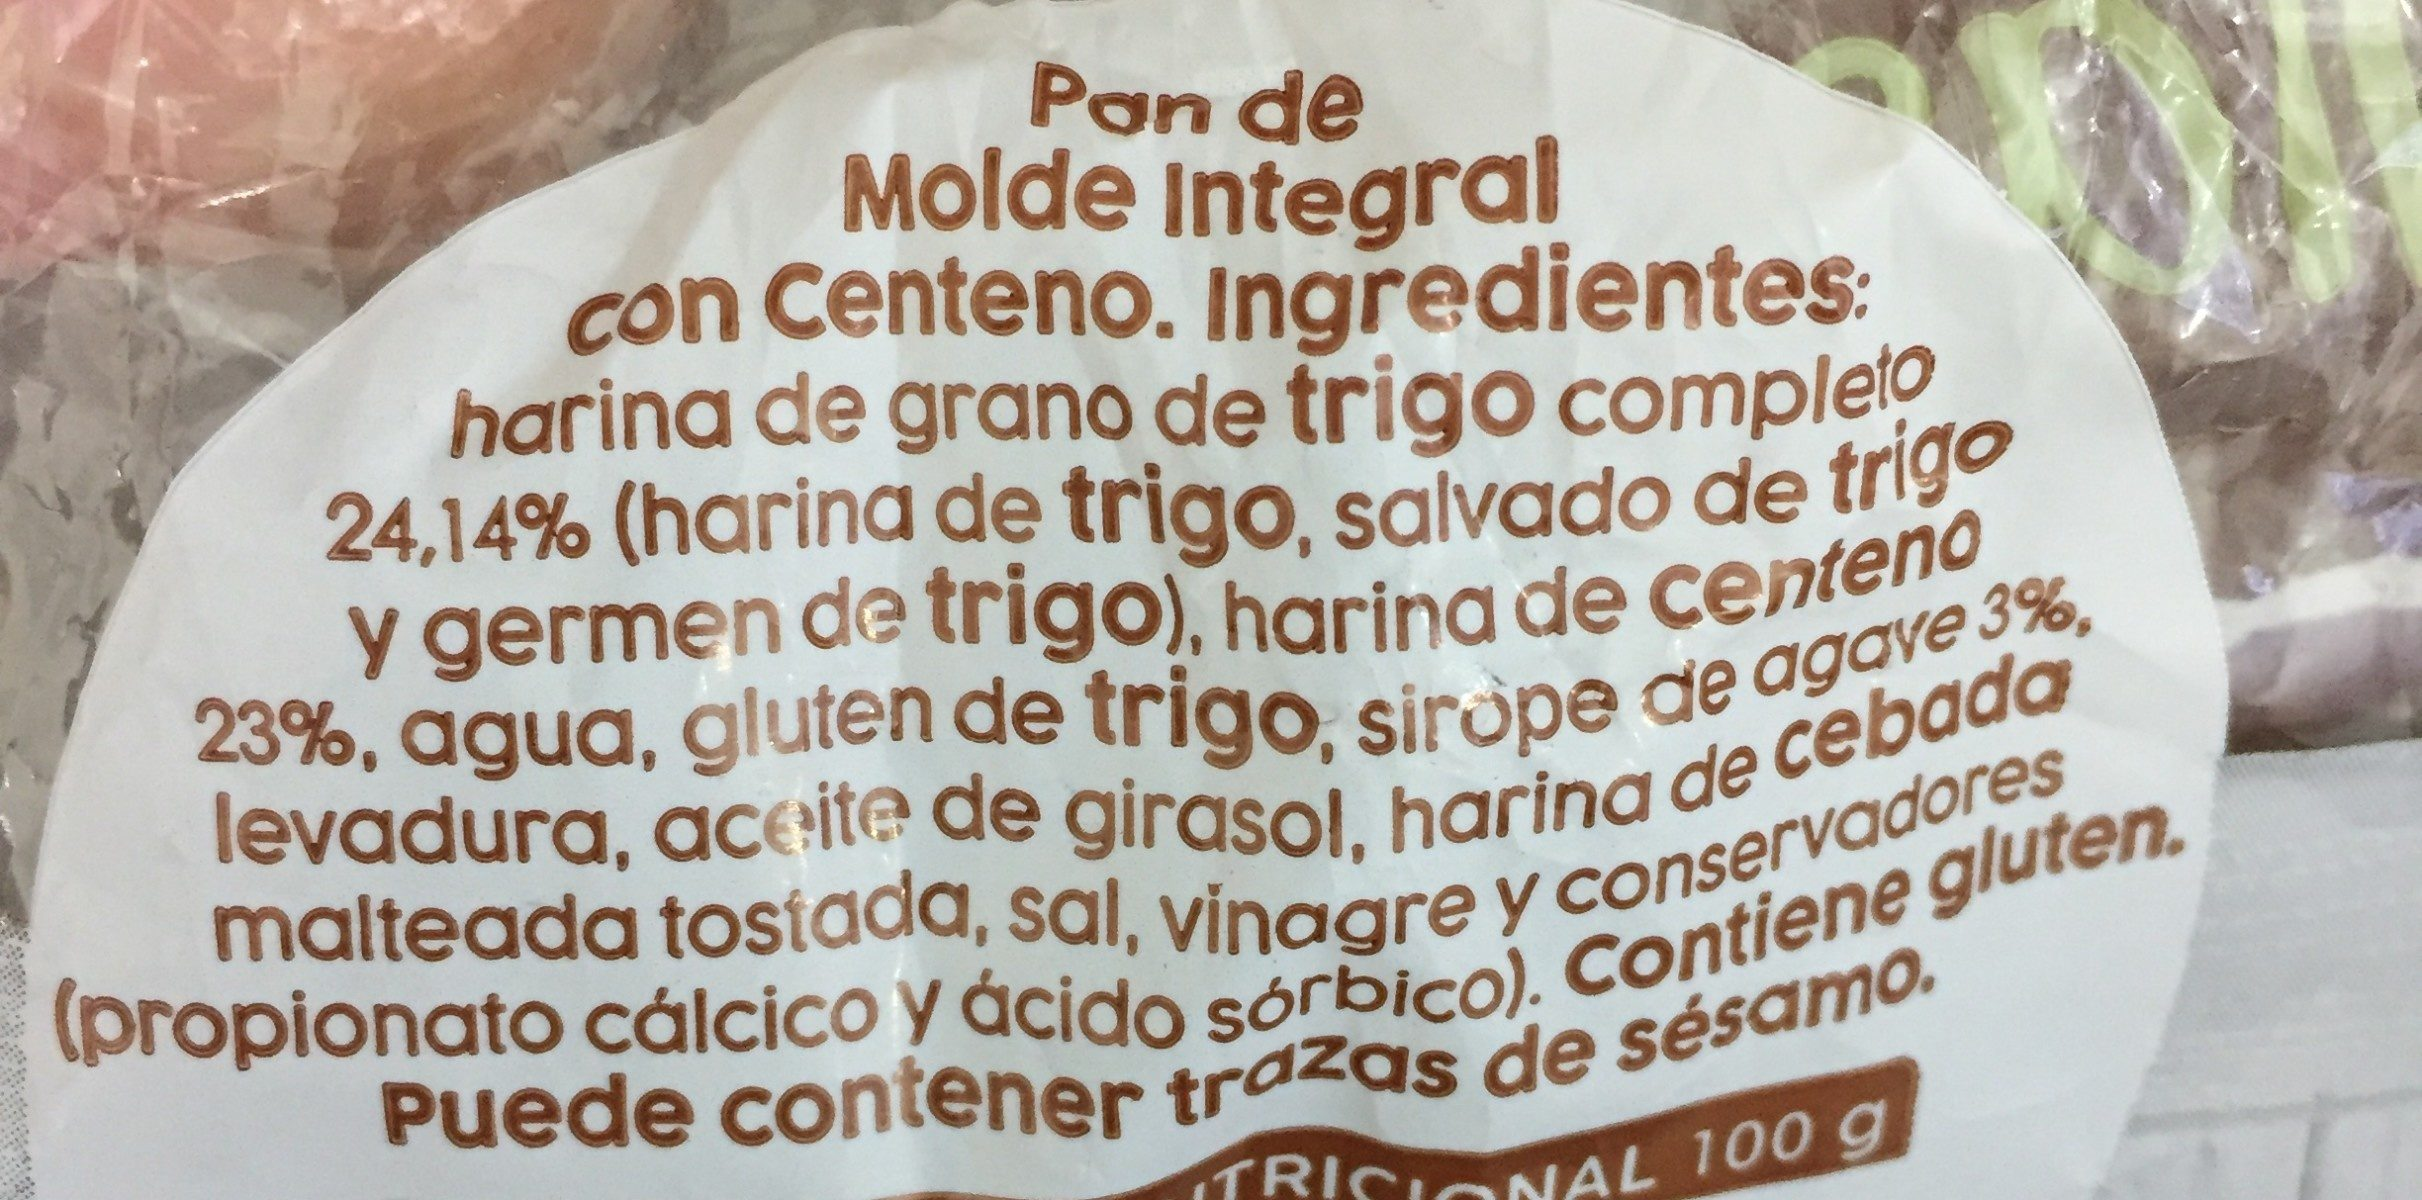 Pan de molde integral con centeno - Ingredients